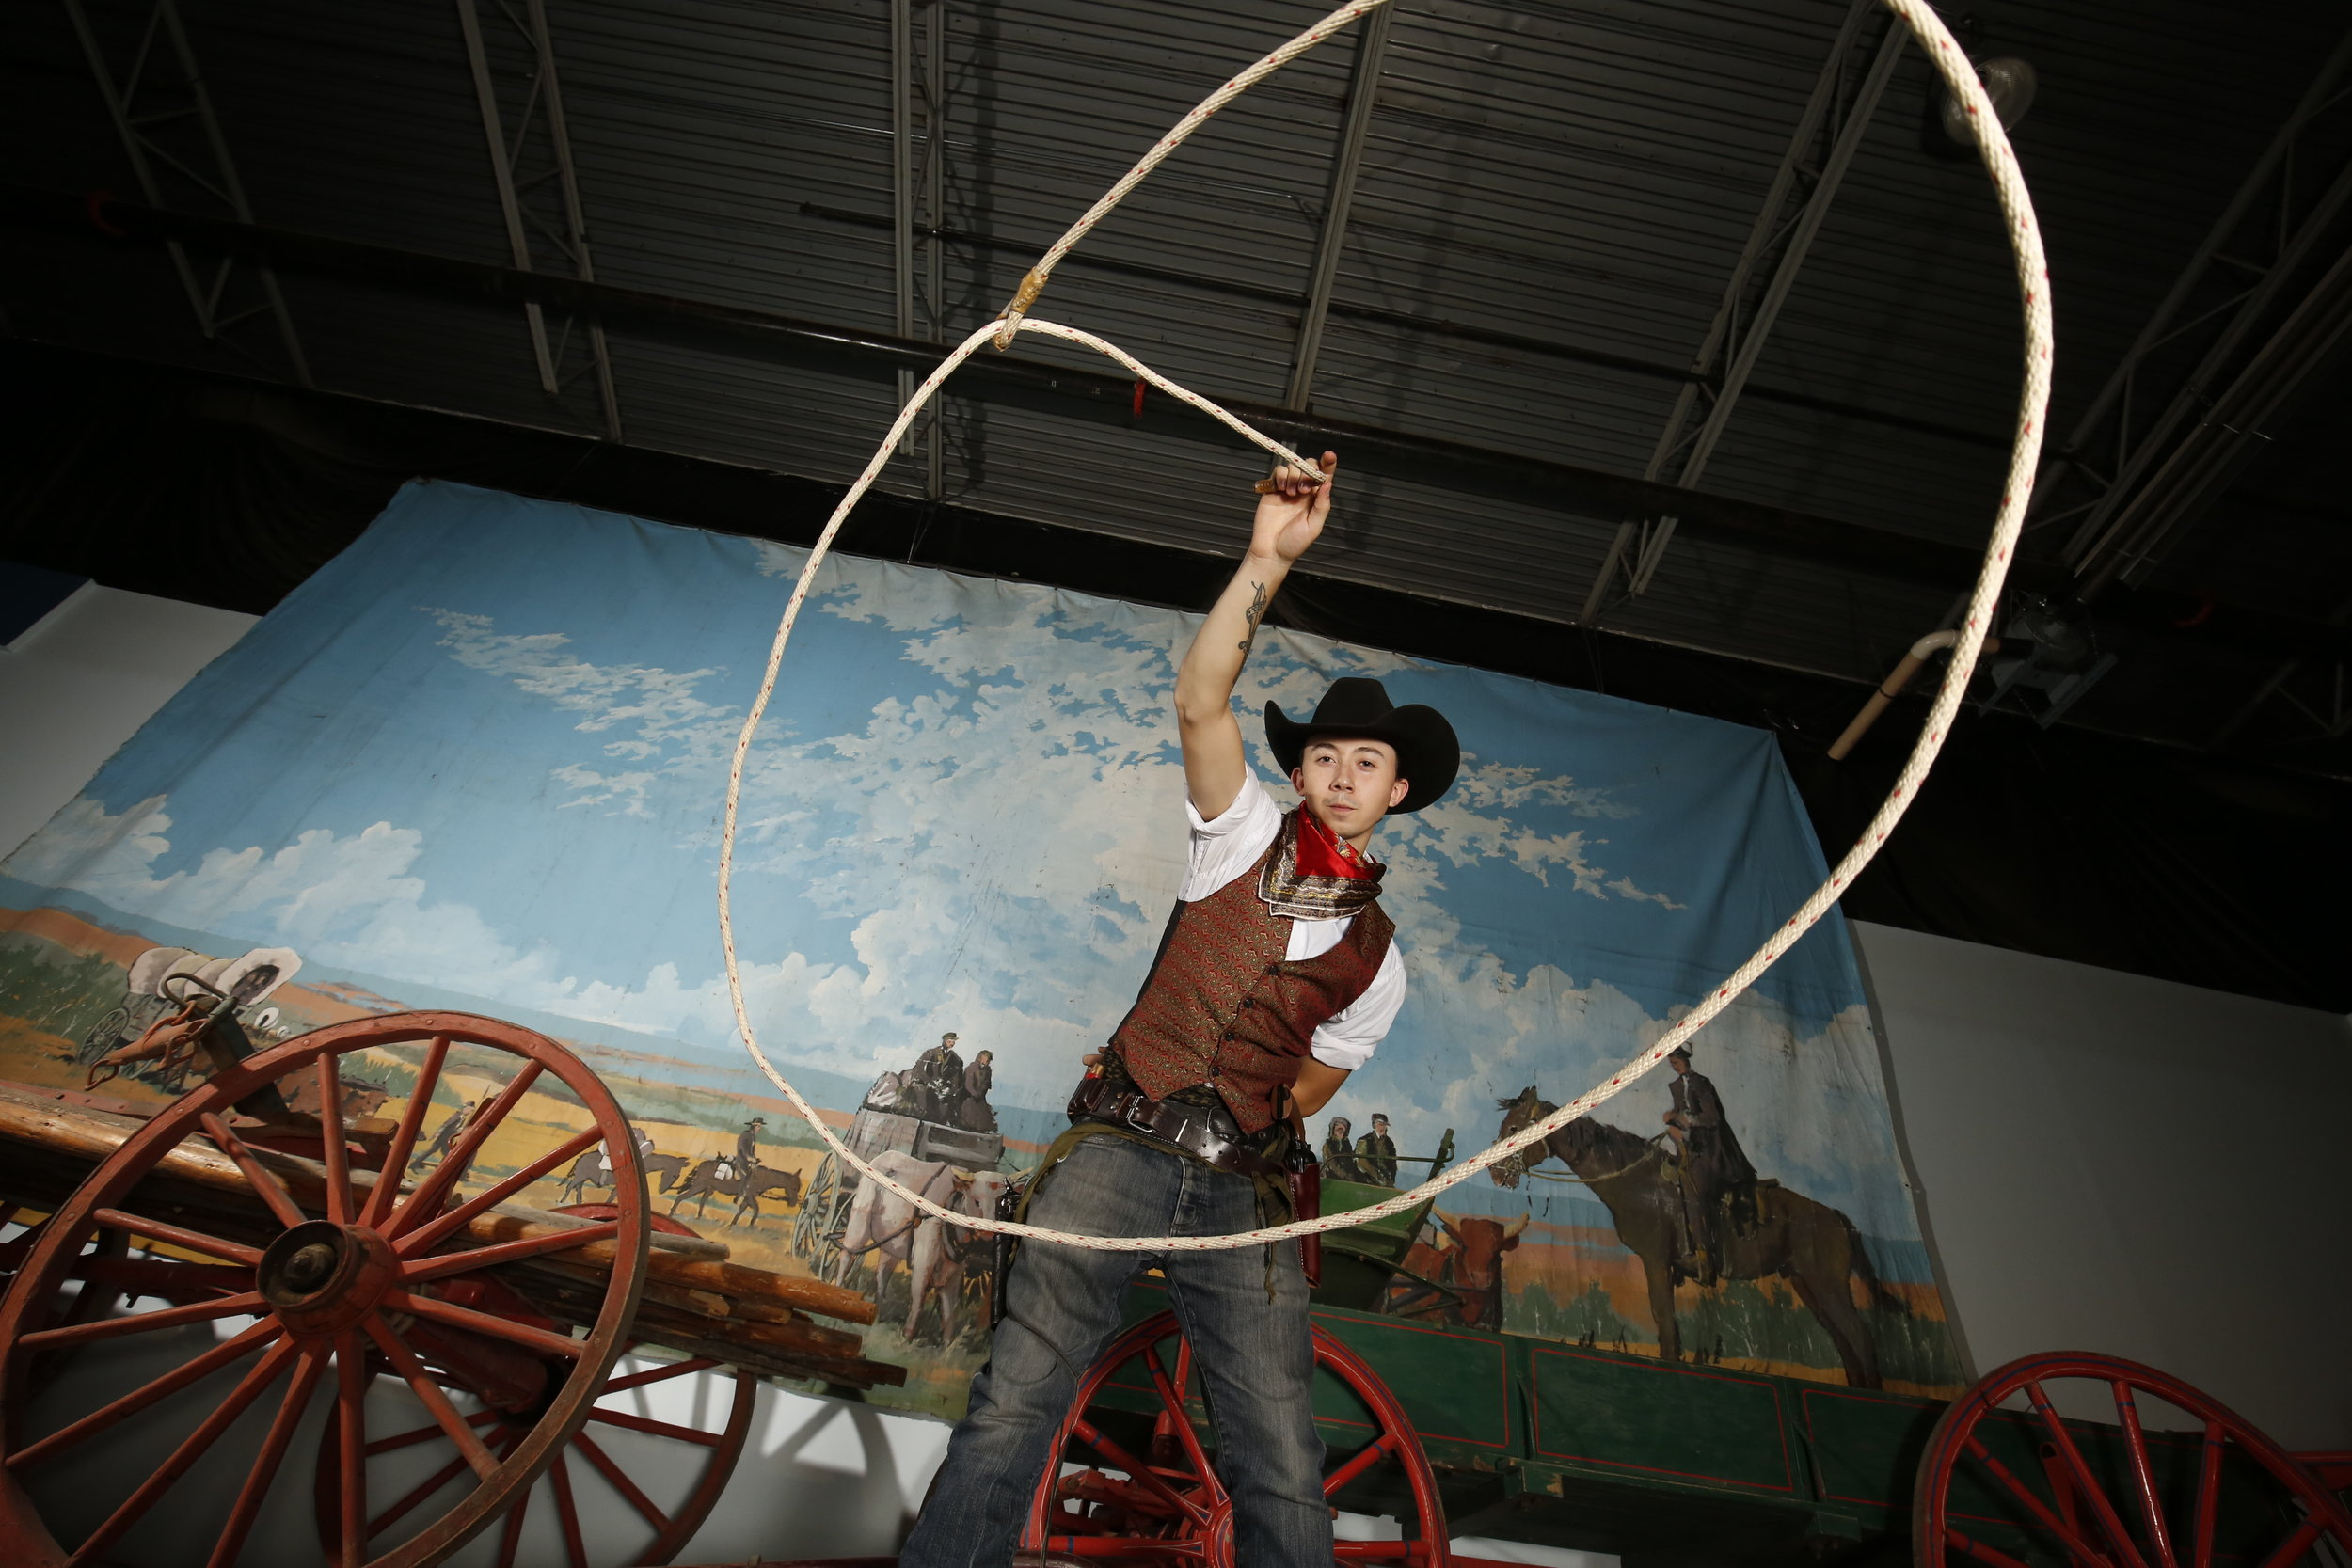 Adam Clarkson will be demonstrating his roping skills at Heritage Day - photo supplied by WDM